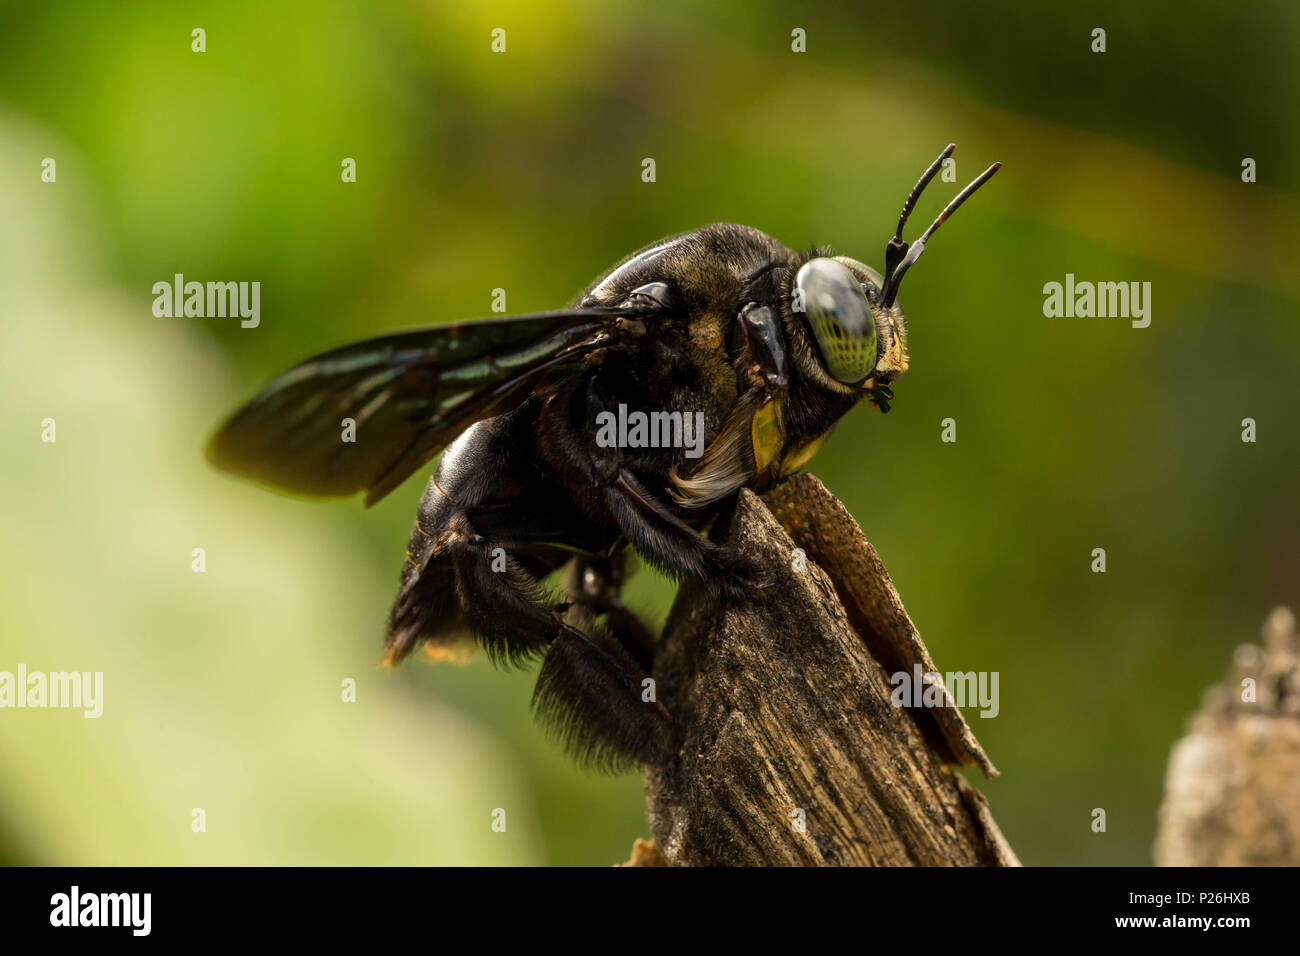 Black bumble bee resting on tree branch Stock Photo